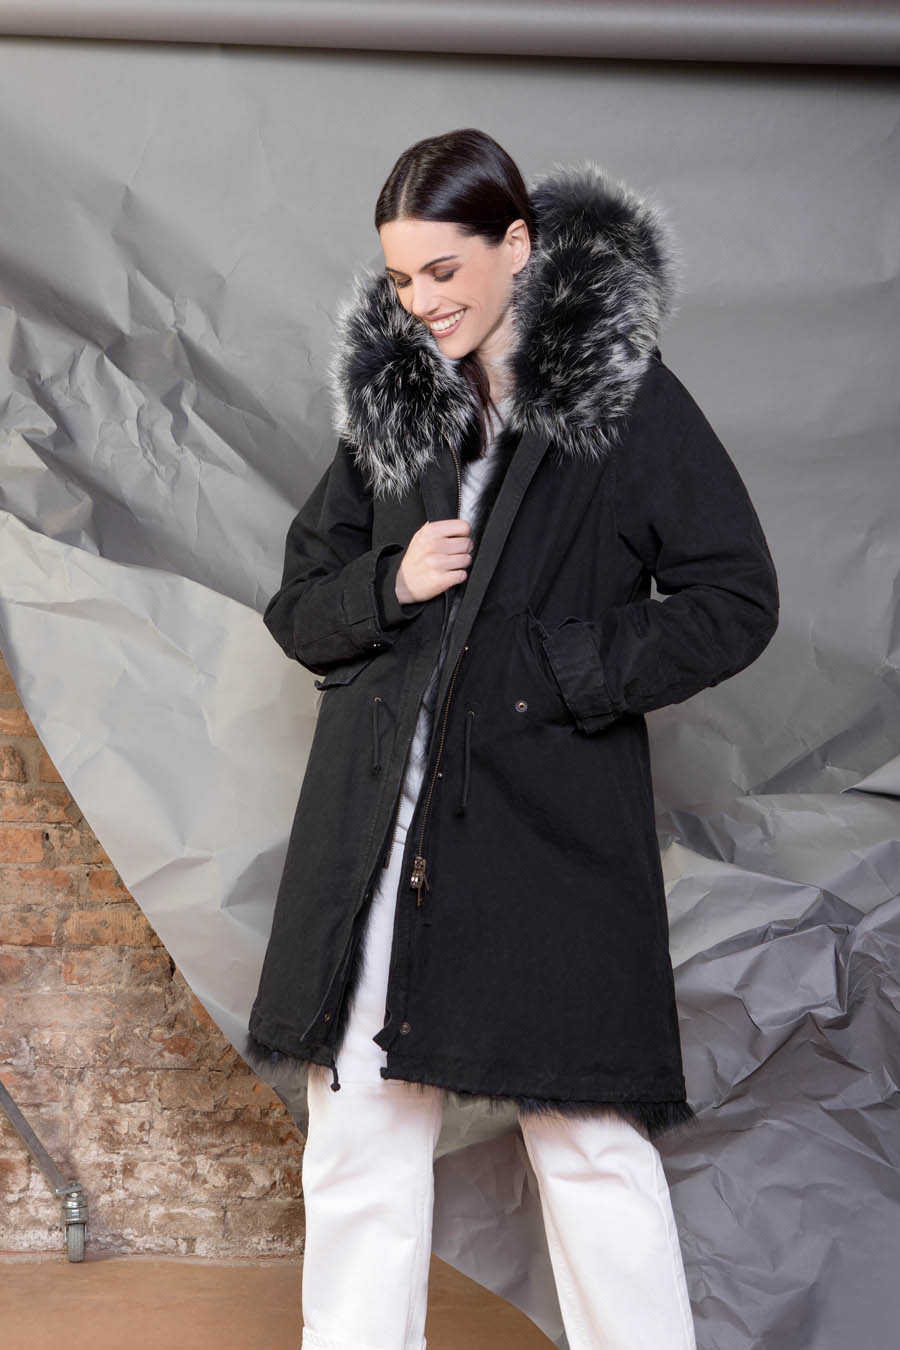 PK19260C 9999 01 gold rush woman parka fur black - Fall Winter 2019-20